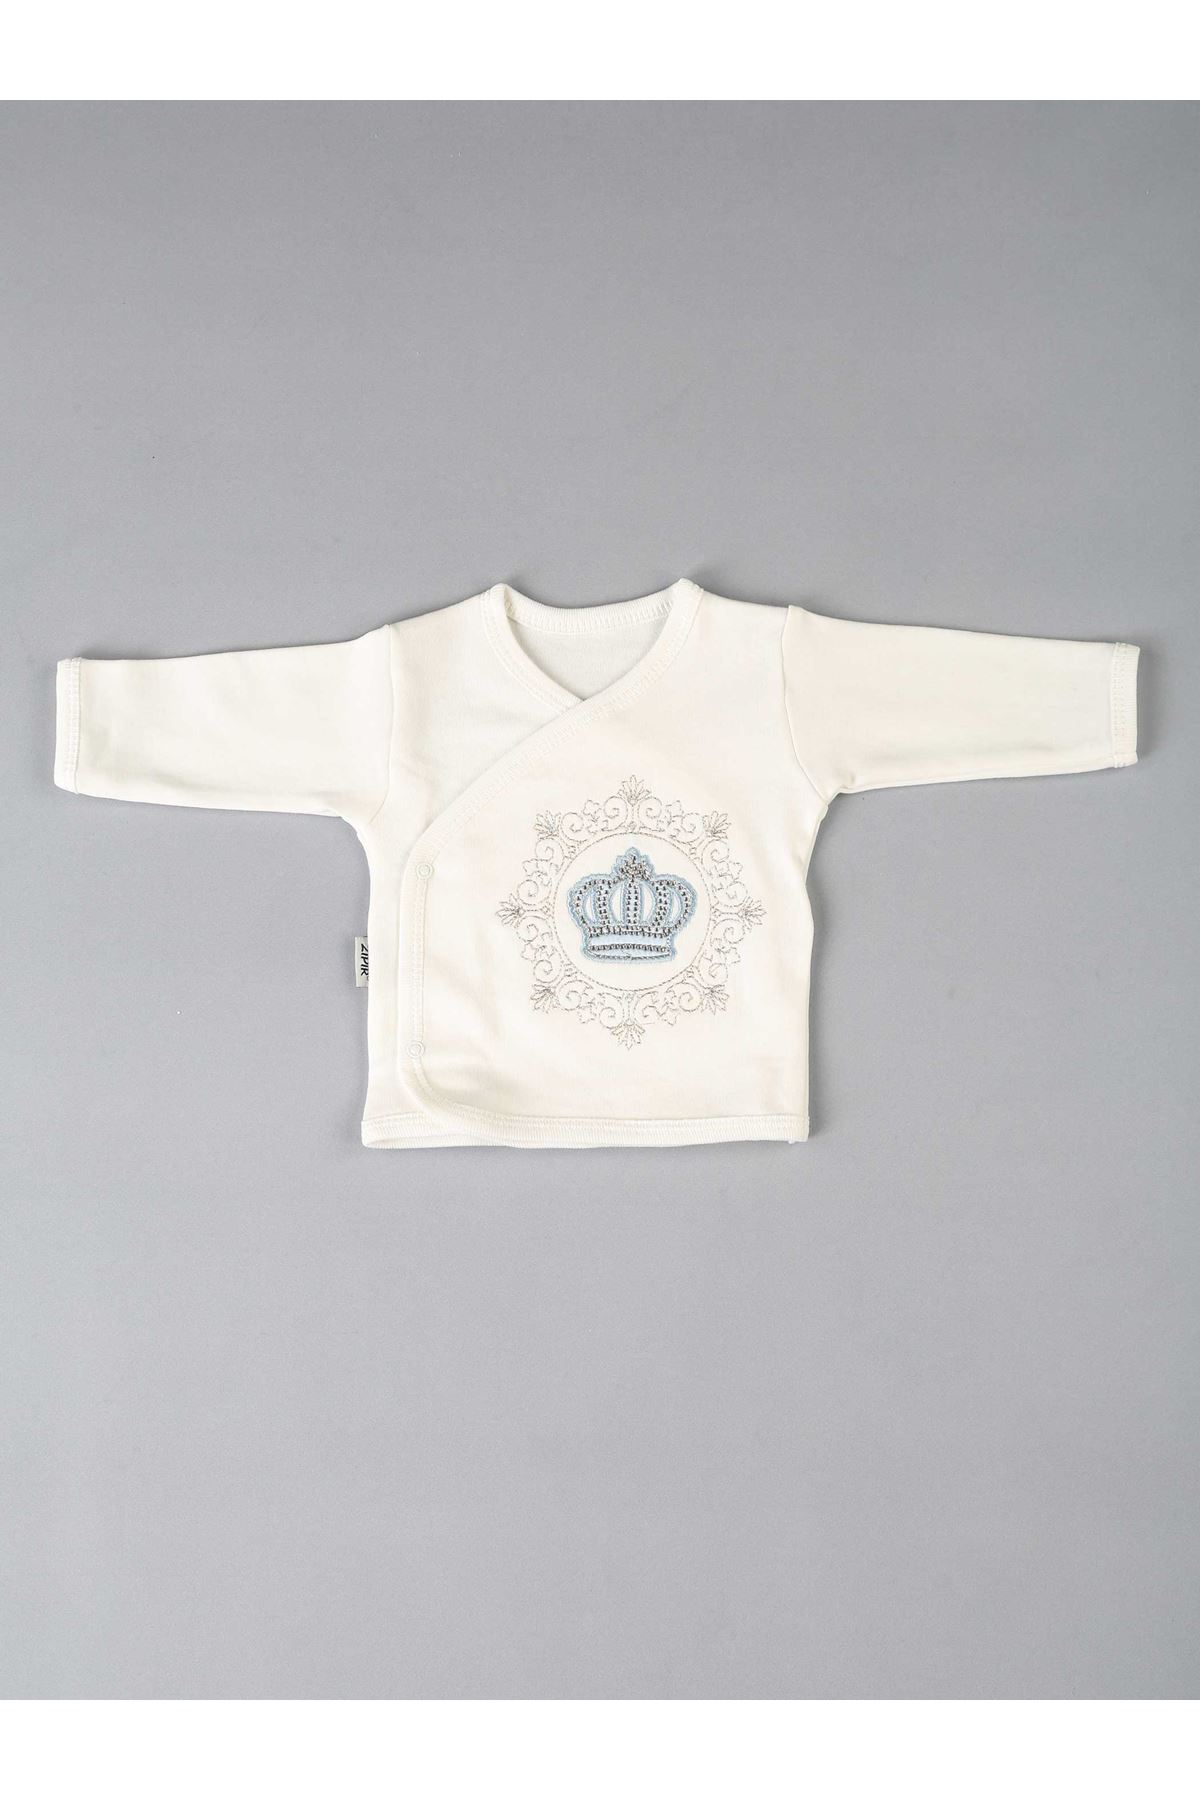 Blue King Crown Baby Boy Newborn Prince Suit 10 Pieces Newborn Babies Boys Clothing Needs Set Cotton Fabric High quality clothes